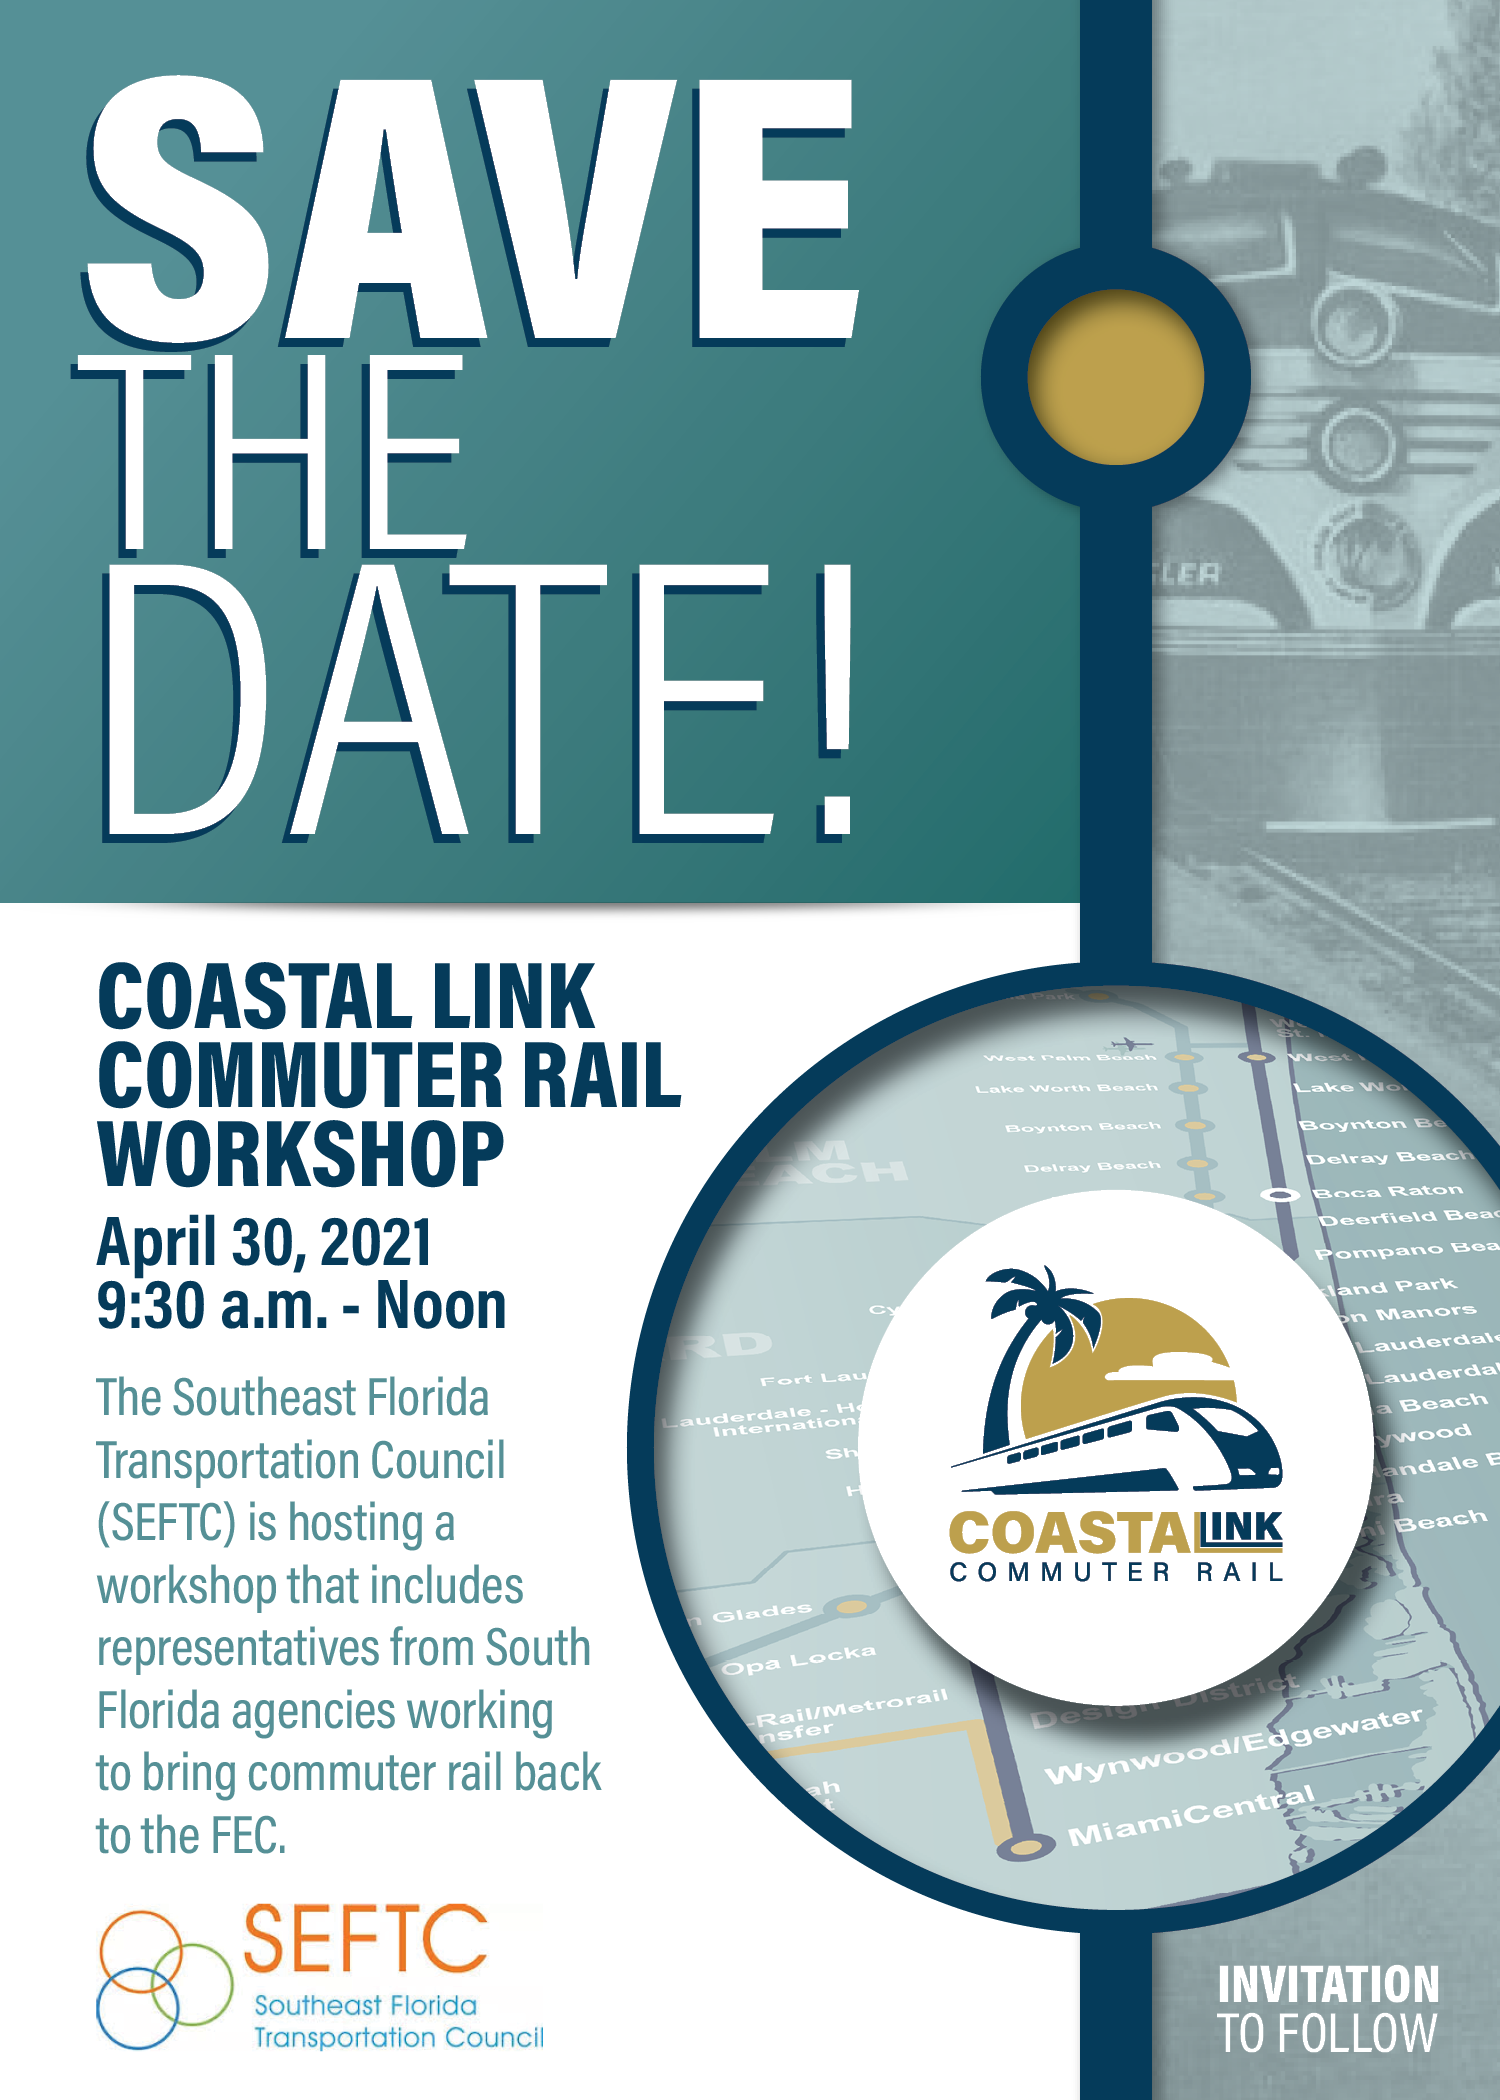 Coastal Link Commuter Rail Save the Date